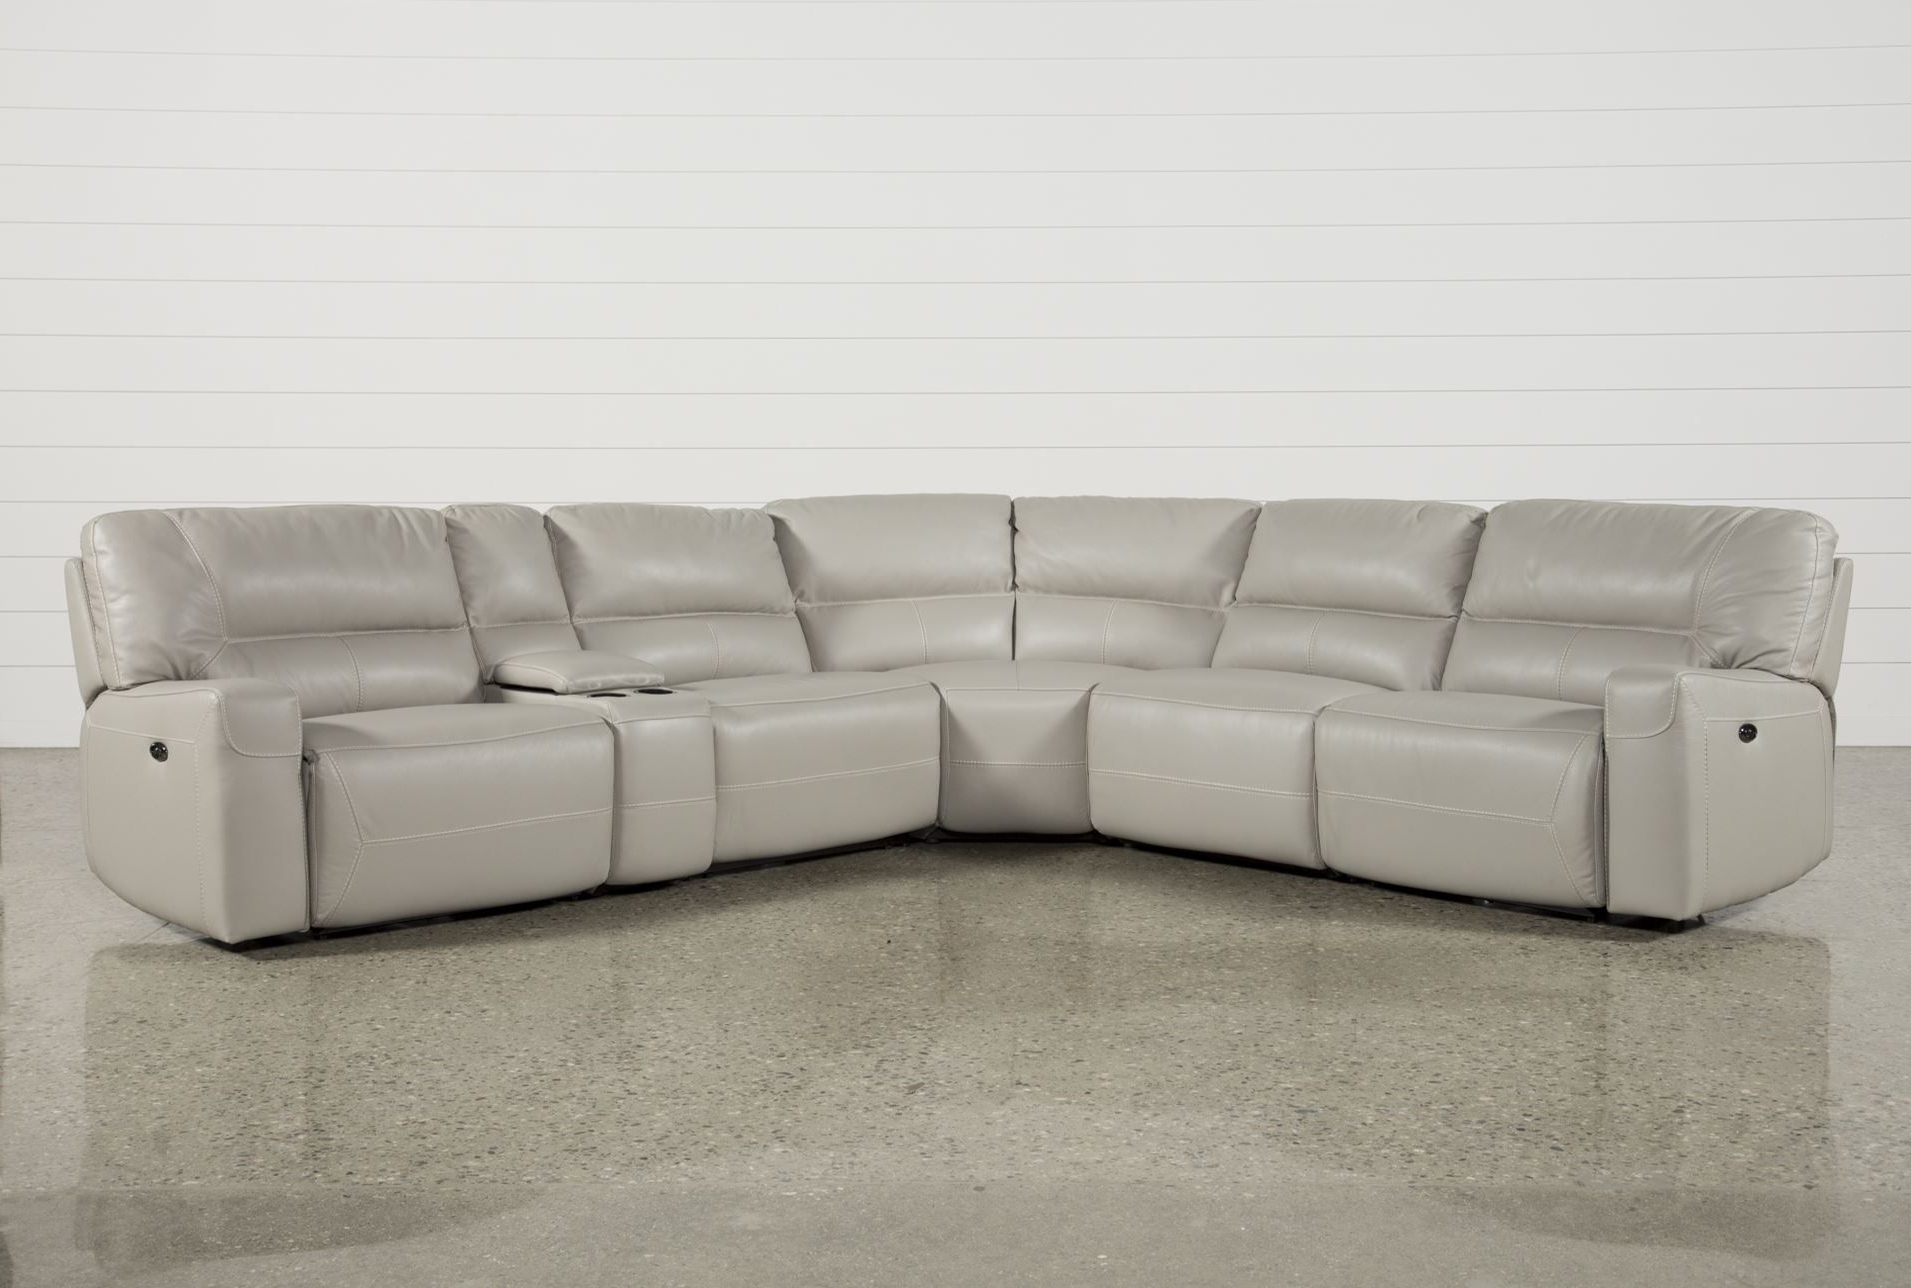 Trendy 6 Piece Power Reclining Sectional, Renaldo, Grey, Sofas (Gallery 1 of 20)